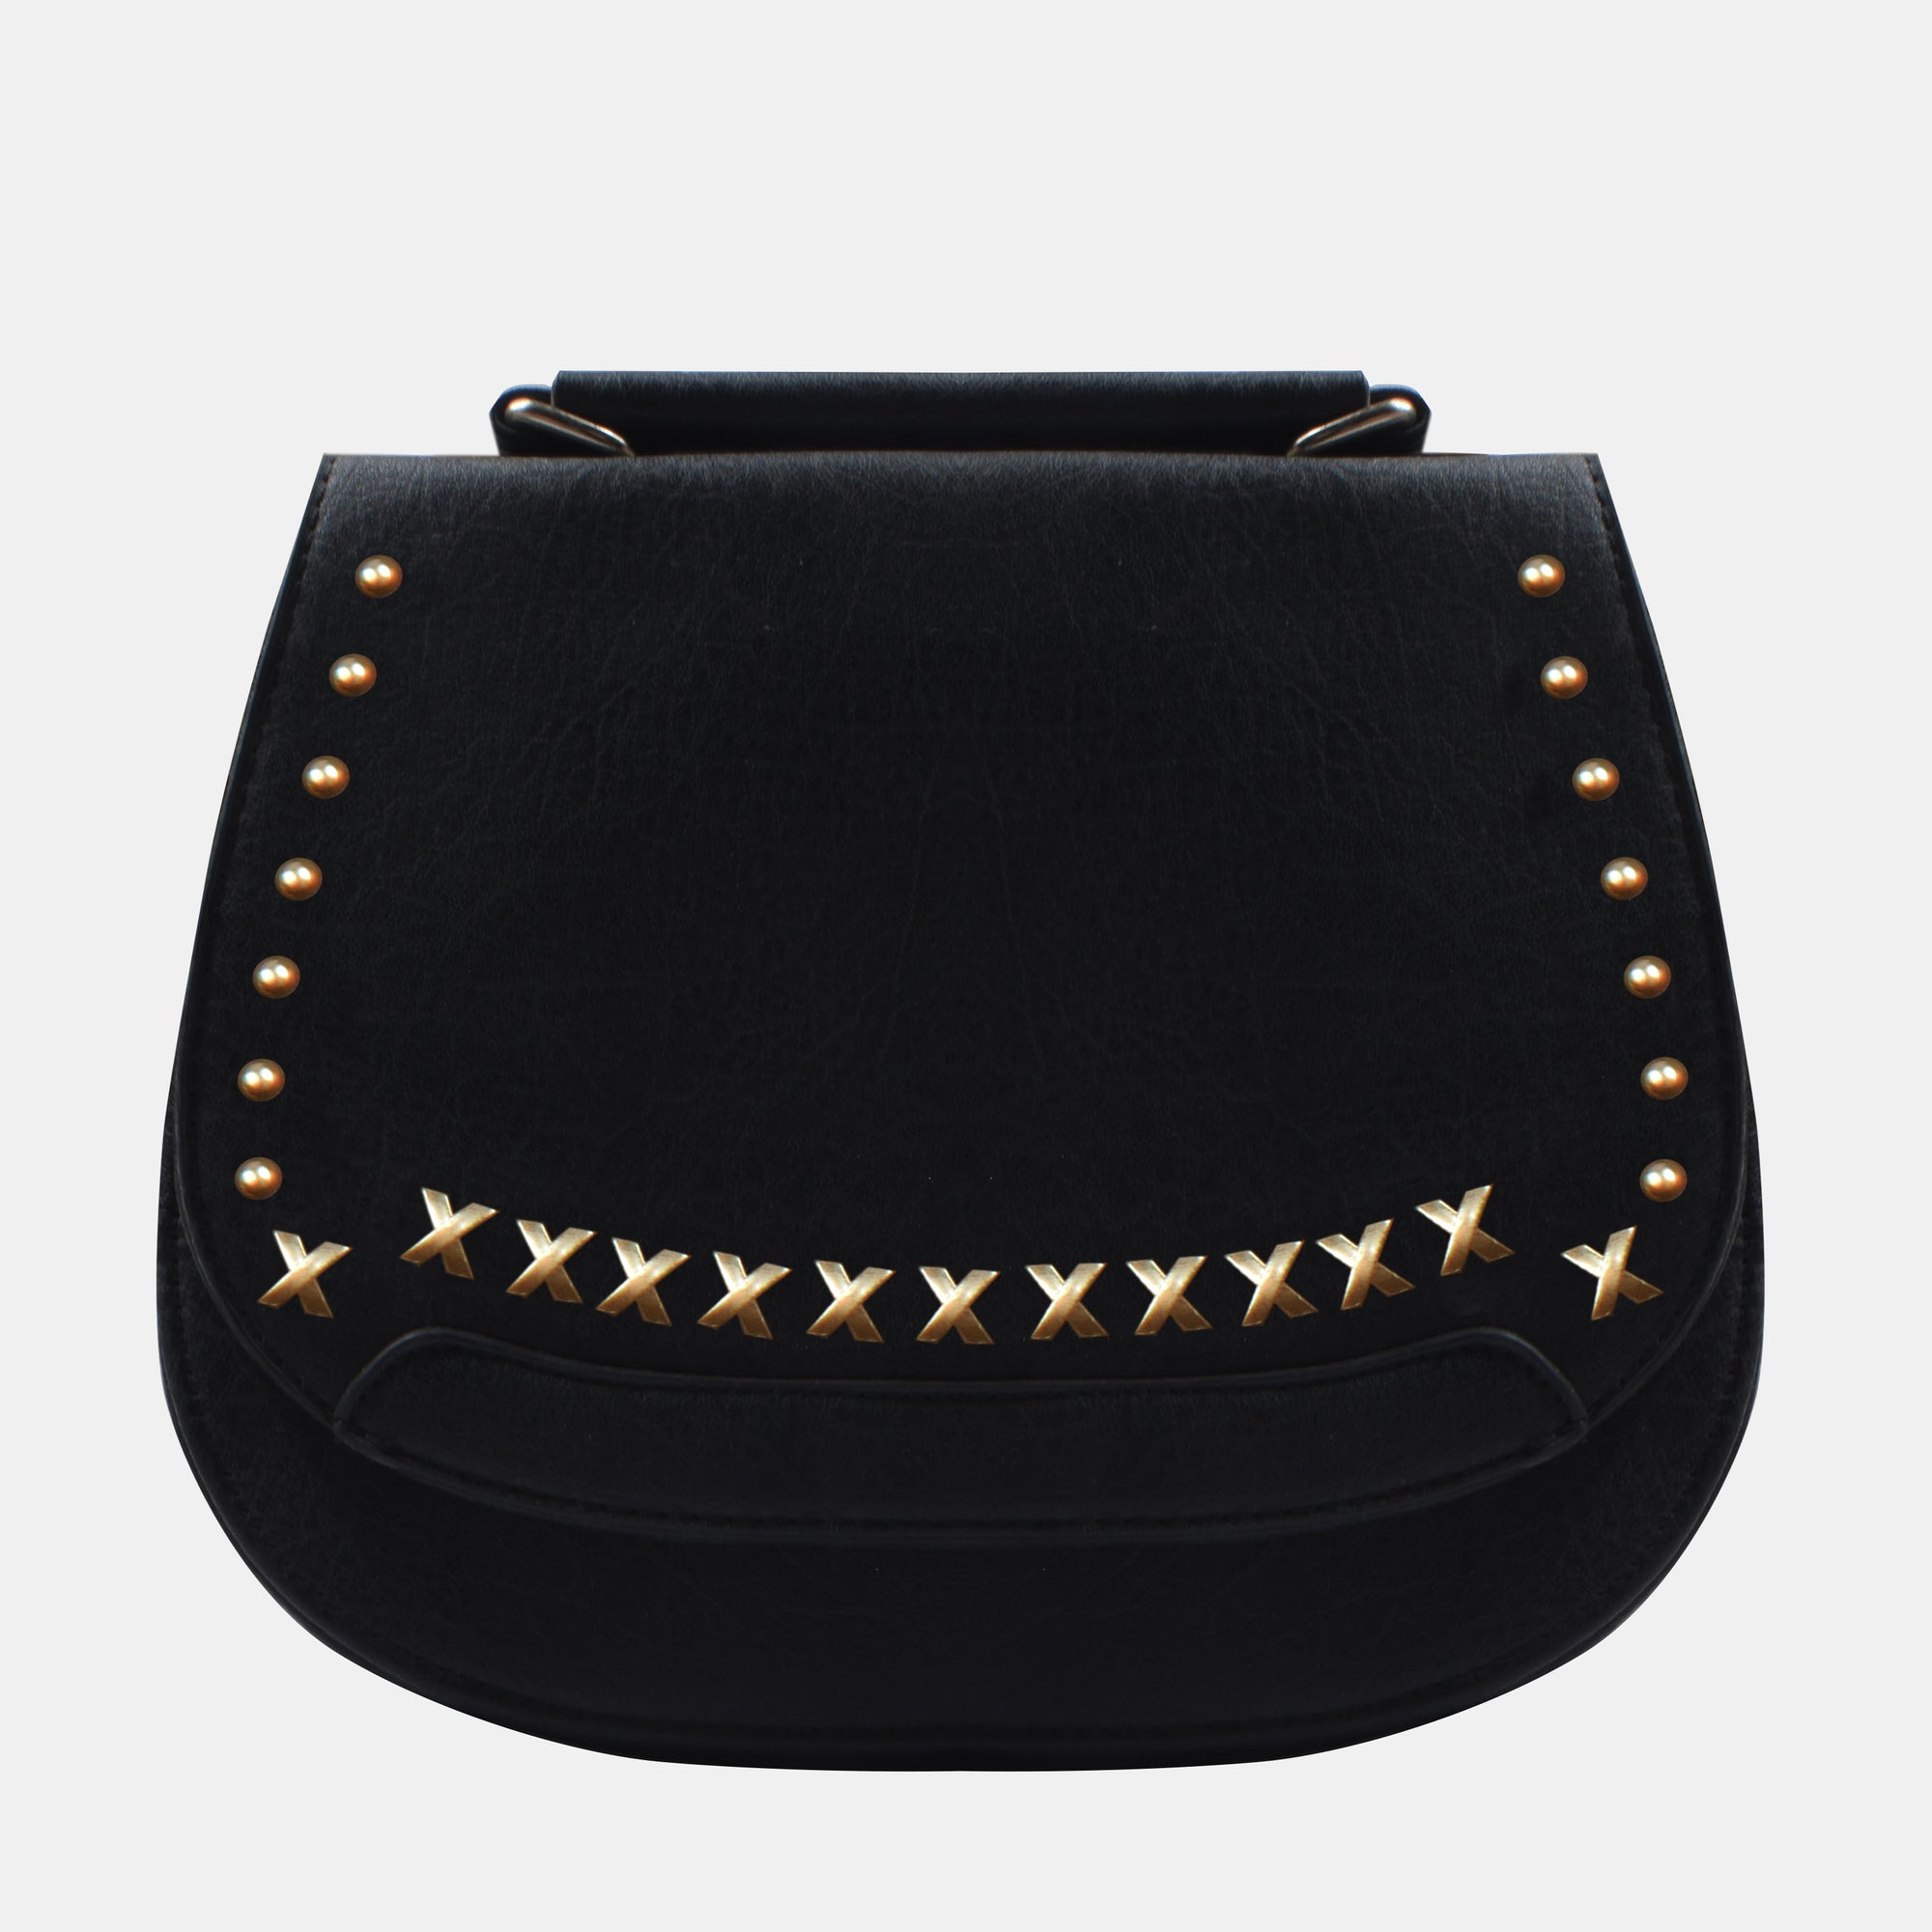 Designer Leather Purse For Women-Black-NA11400